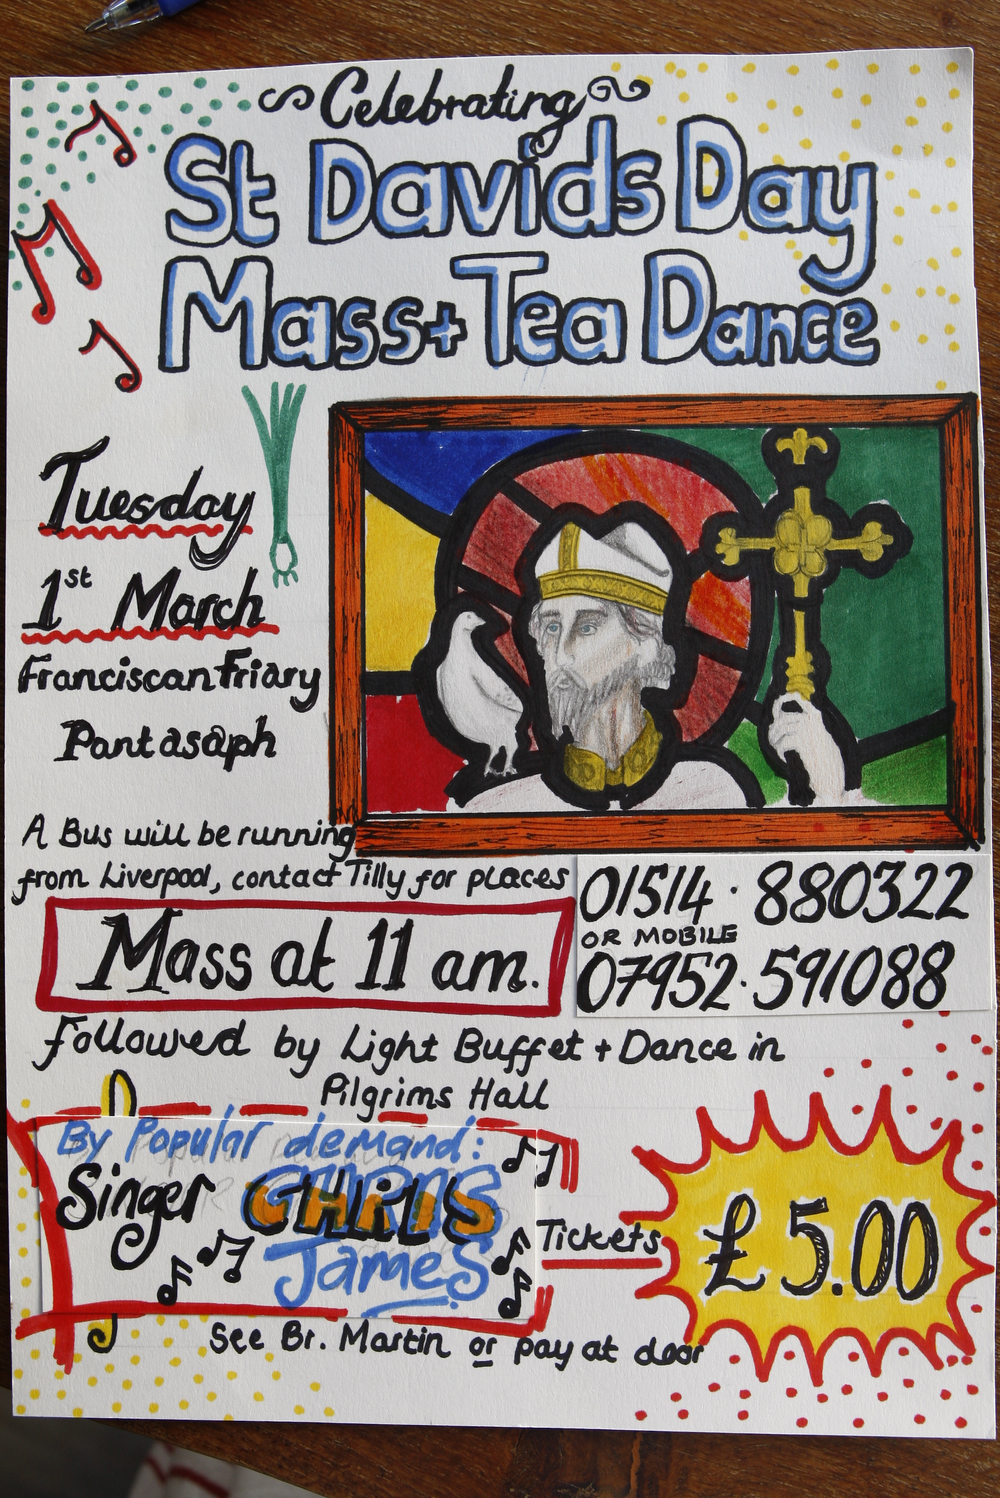 Celebrate St Davids Day in style at the Franciscan friary Pantasaph with a mass at 11am followed by a tea dance.   For more information have a look at events calendar.